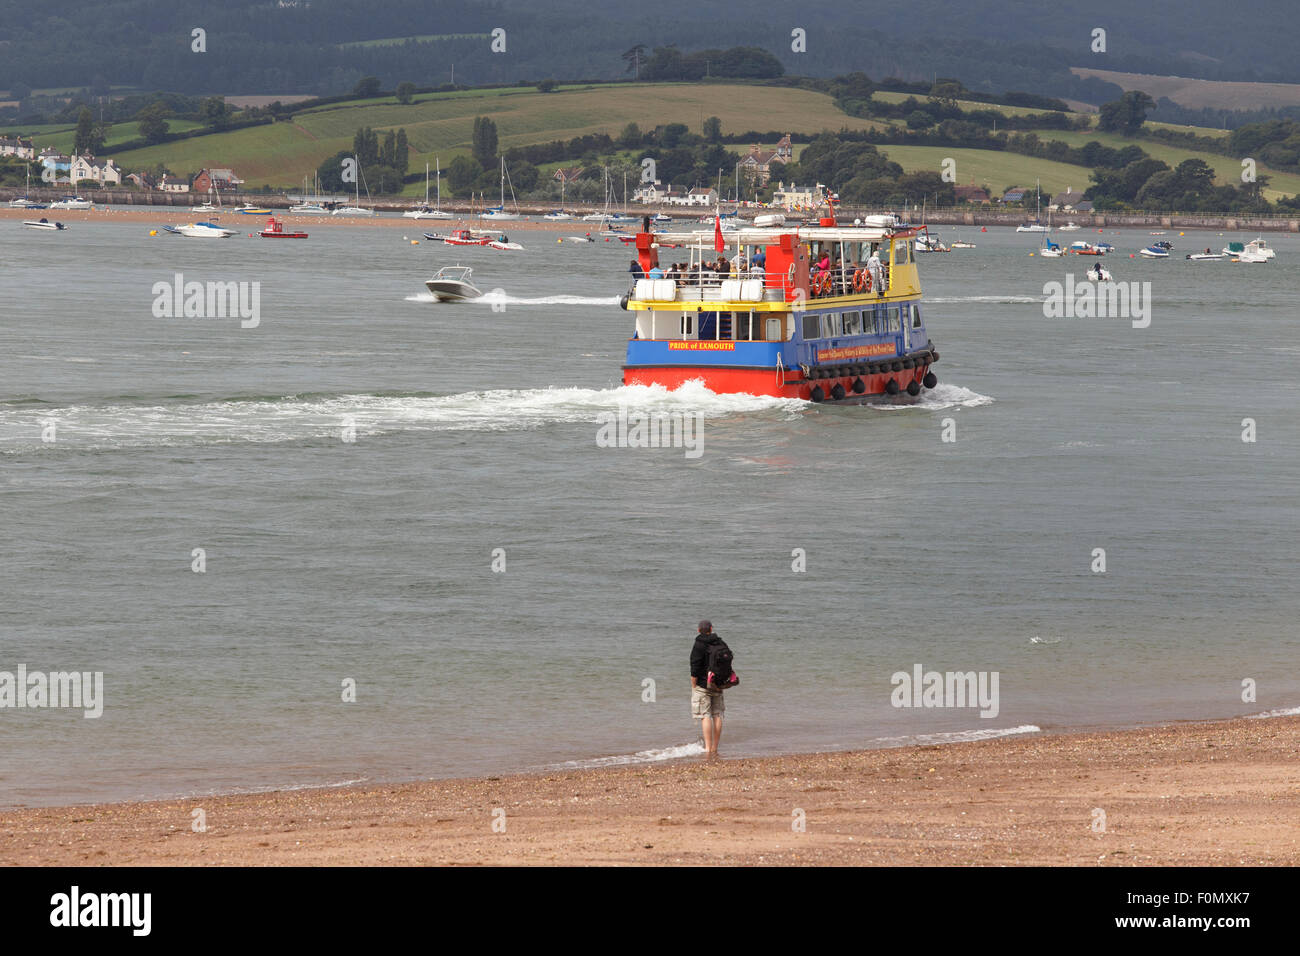 'Pride of Exmouth' ferry, watched from beach by man, cruising into mouth of the river Exe. Stock Photo